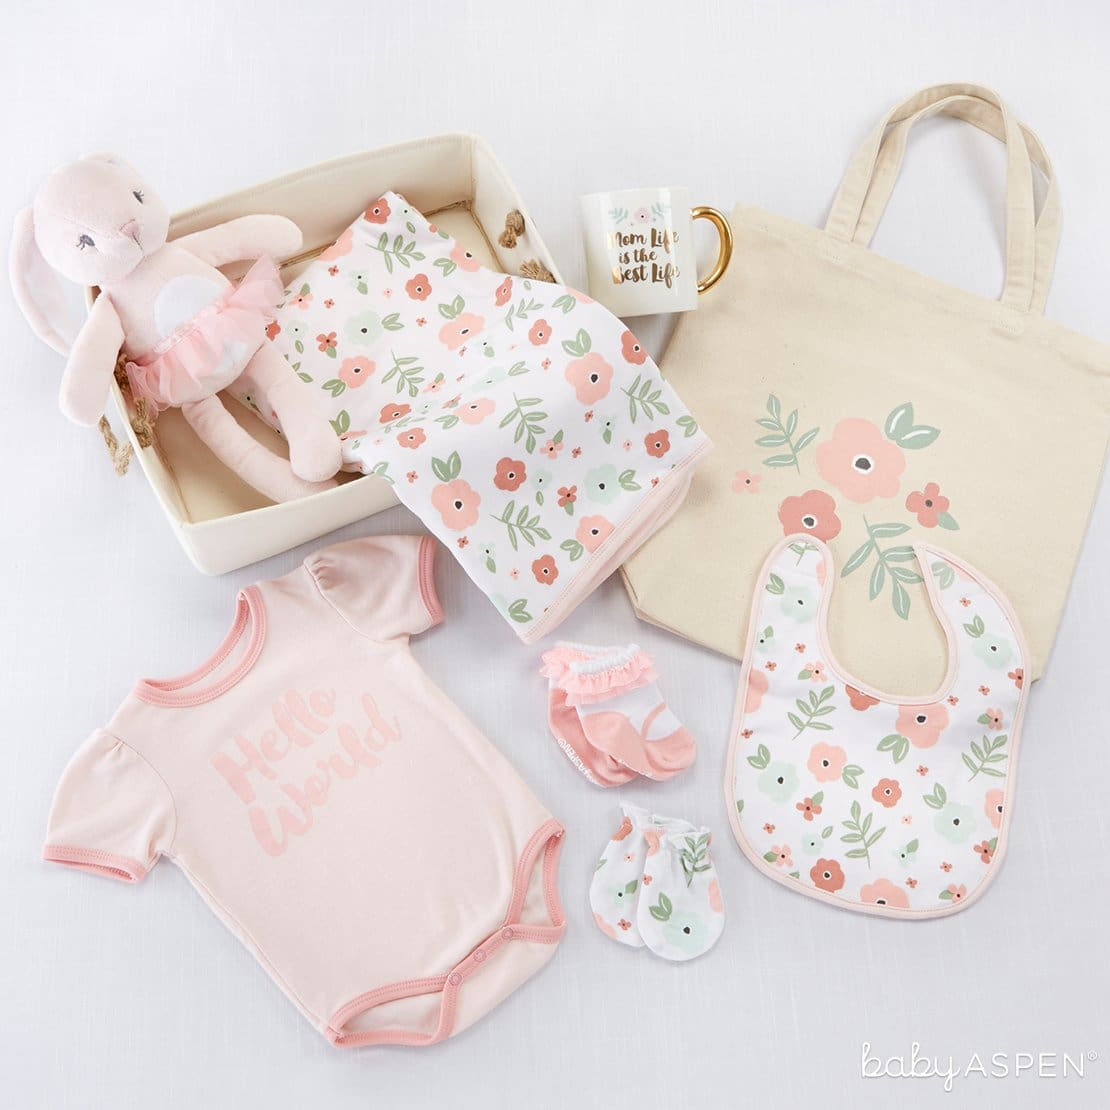 Fancy Floral 9-Piece Baby Gift Basket